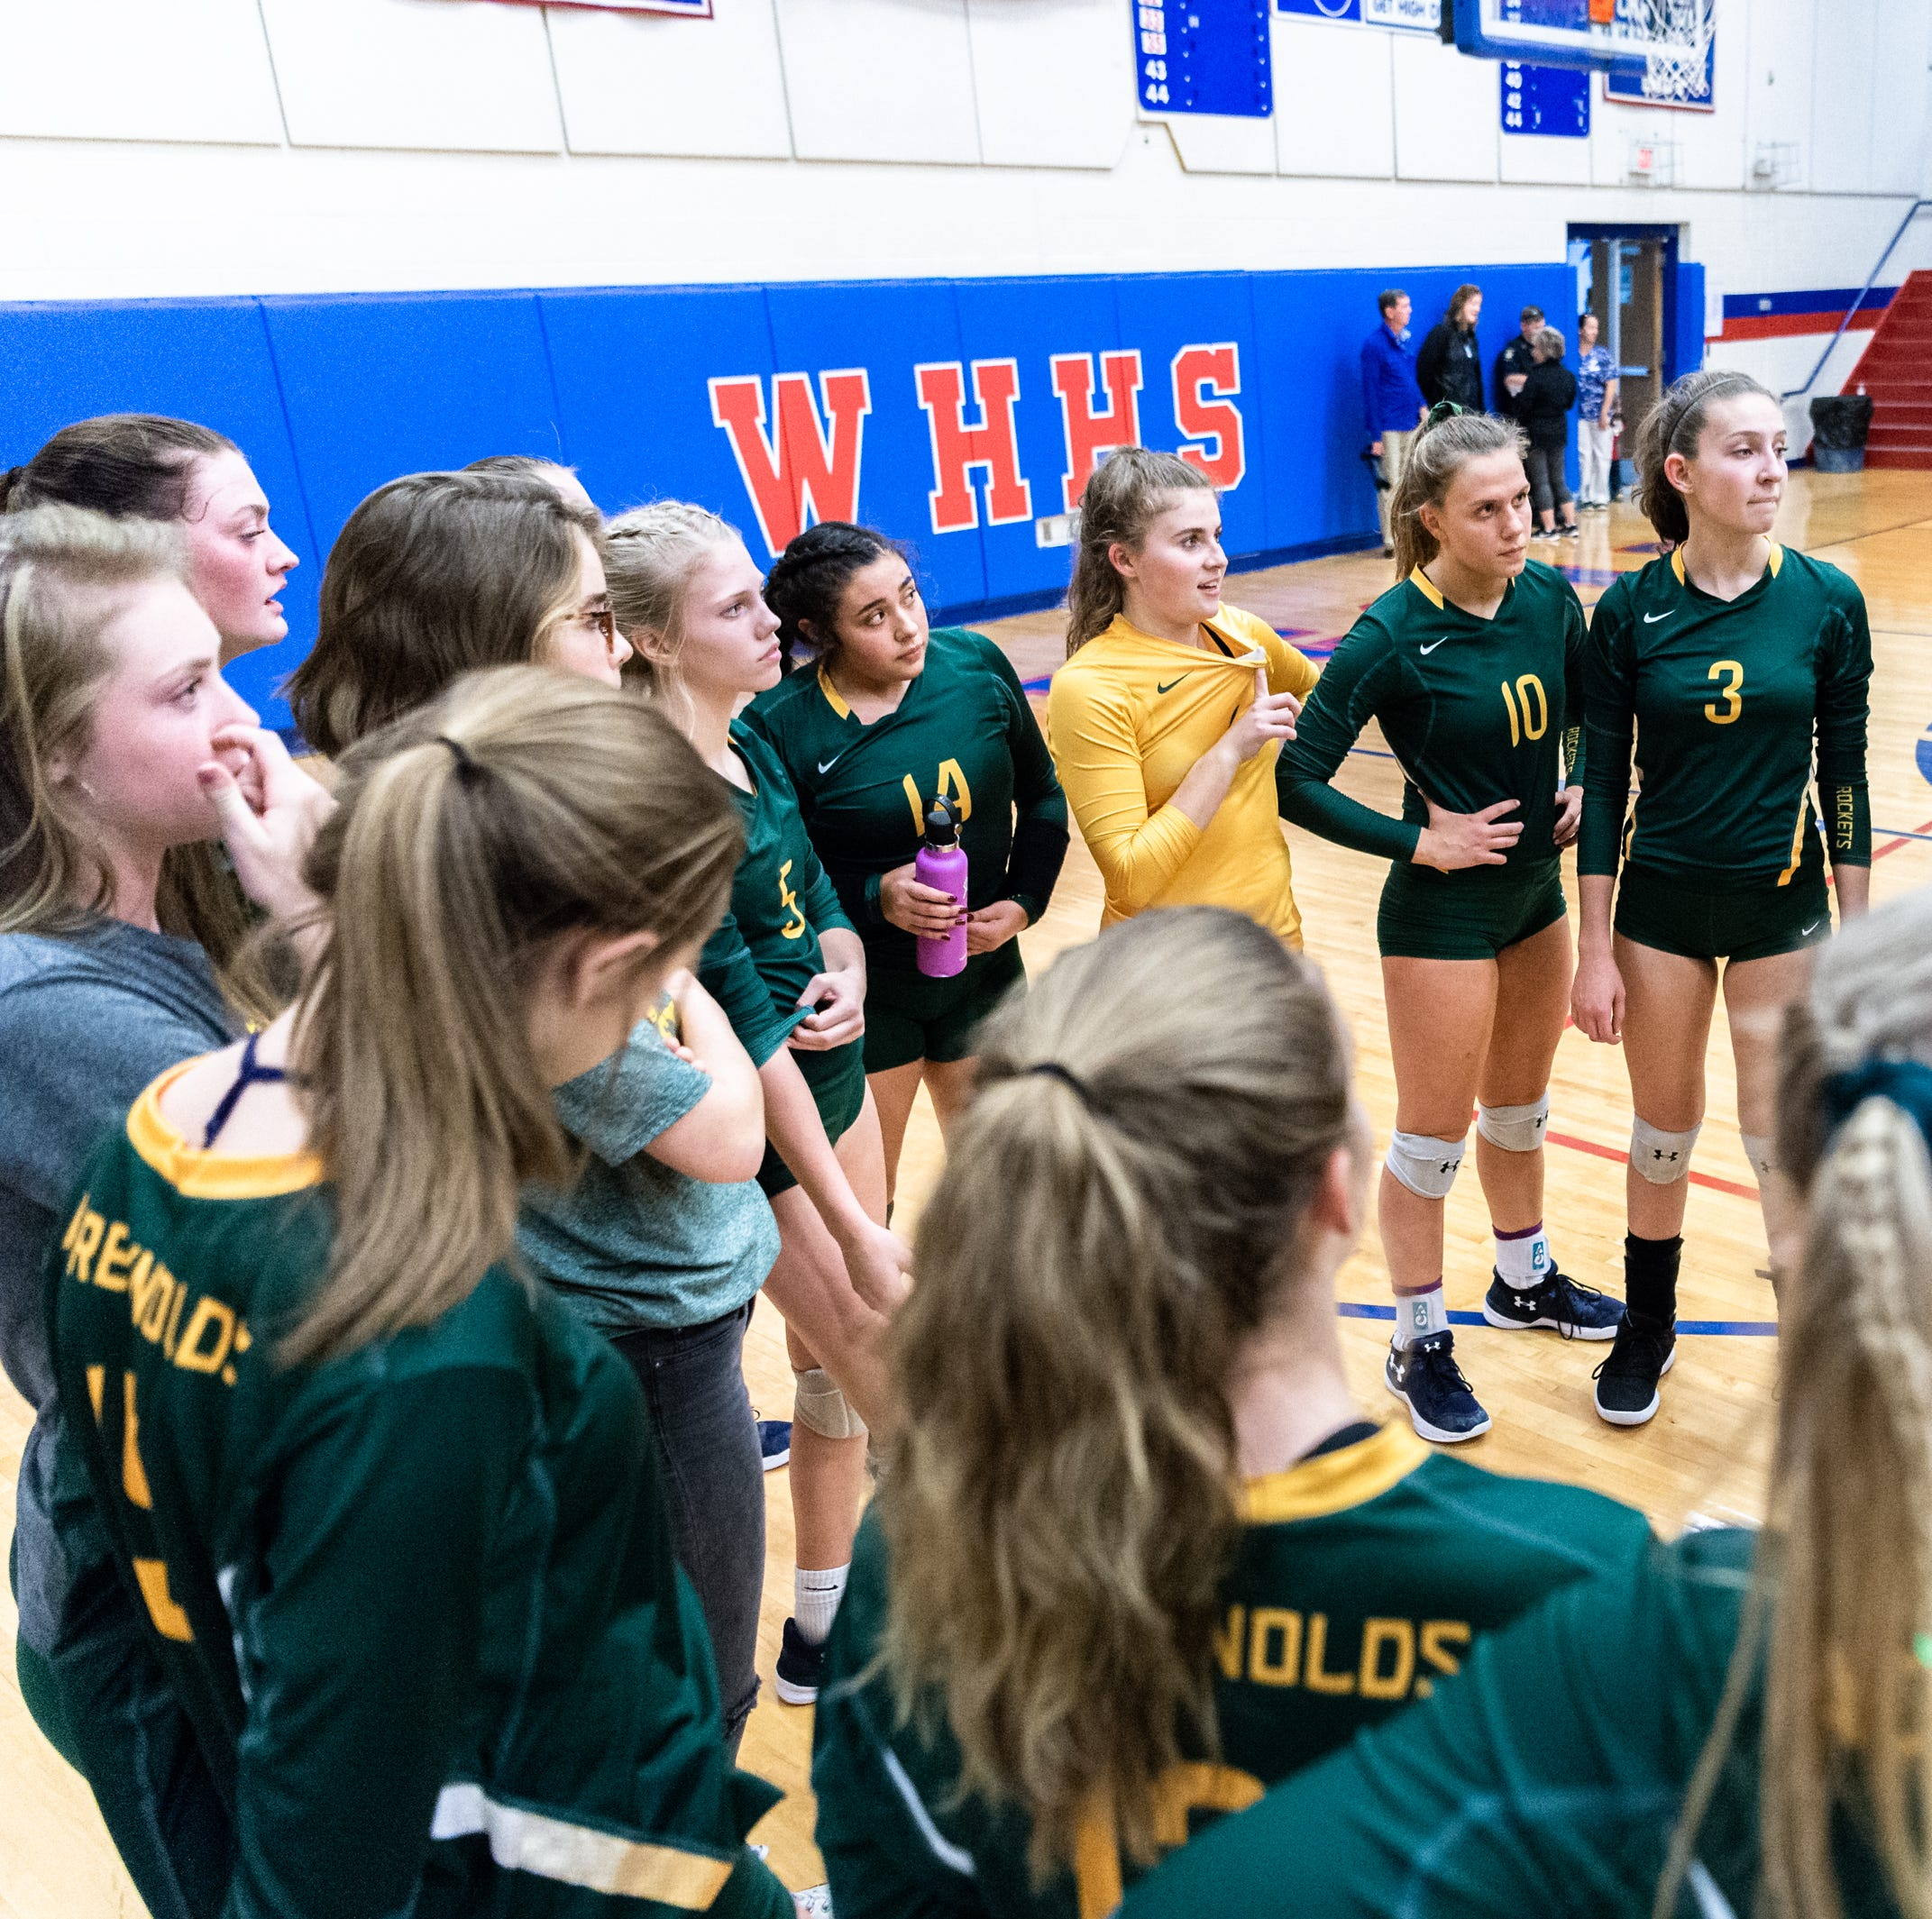 Reynolds volleyball coach steps down